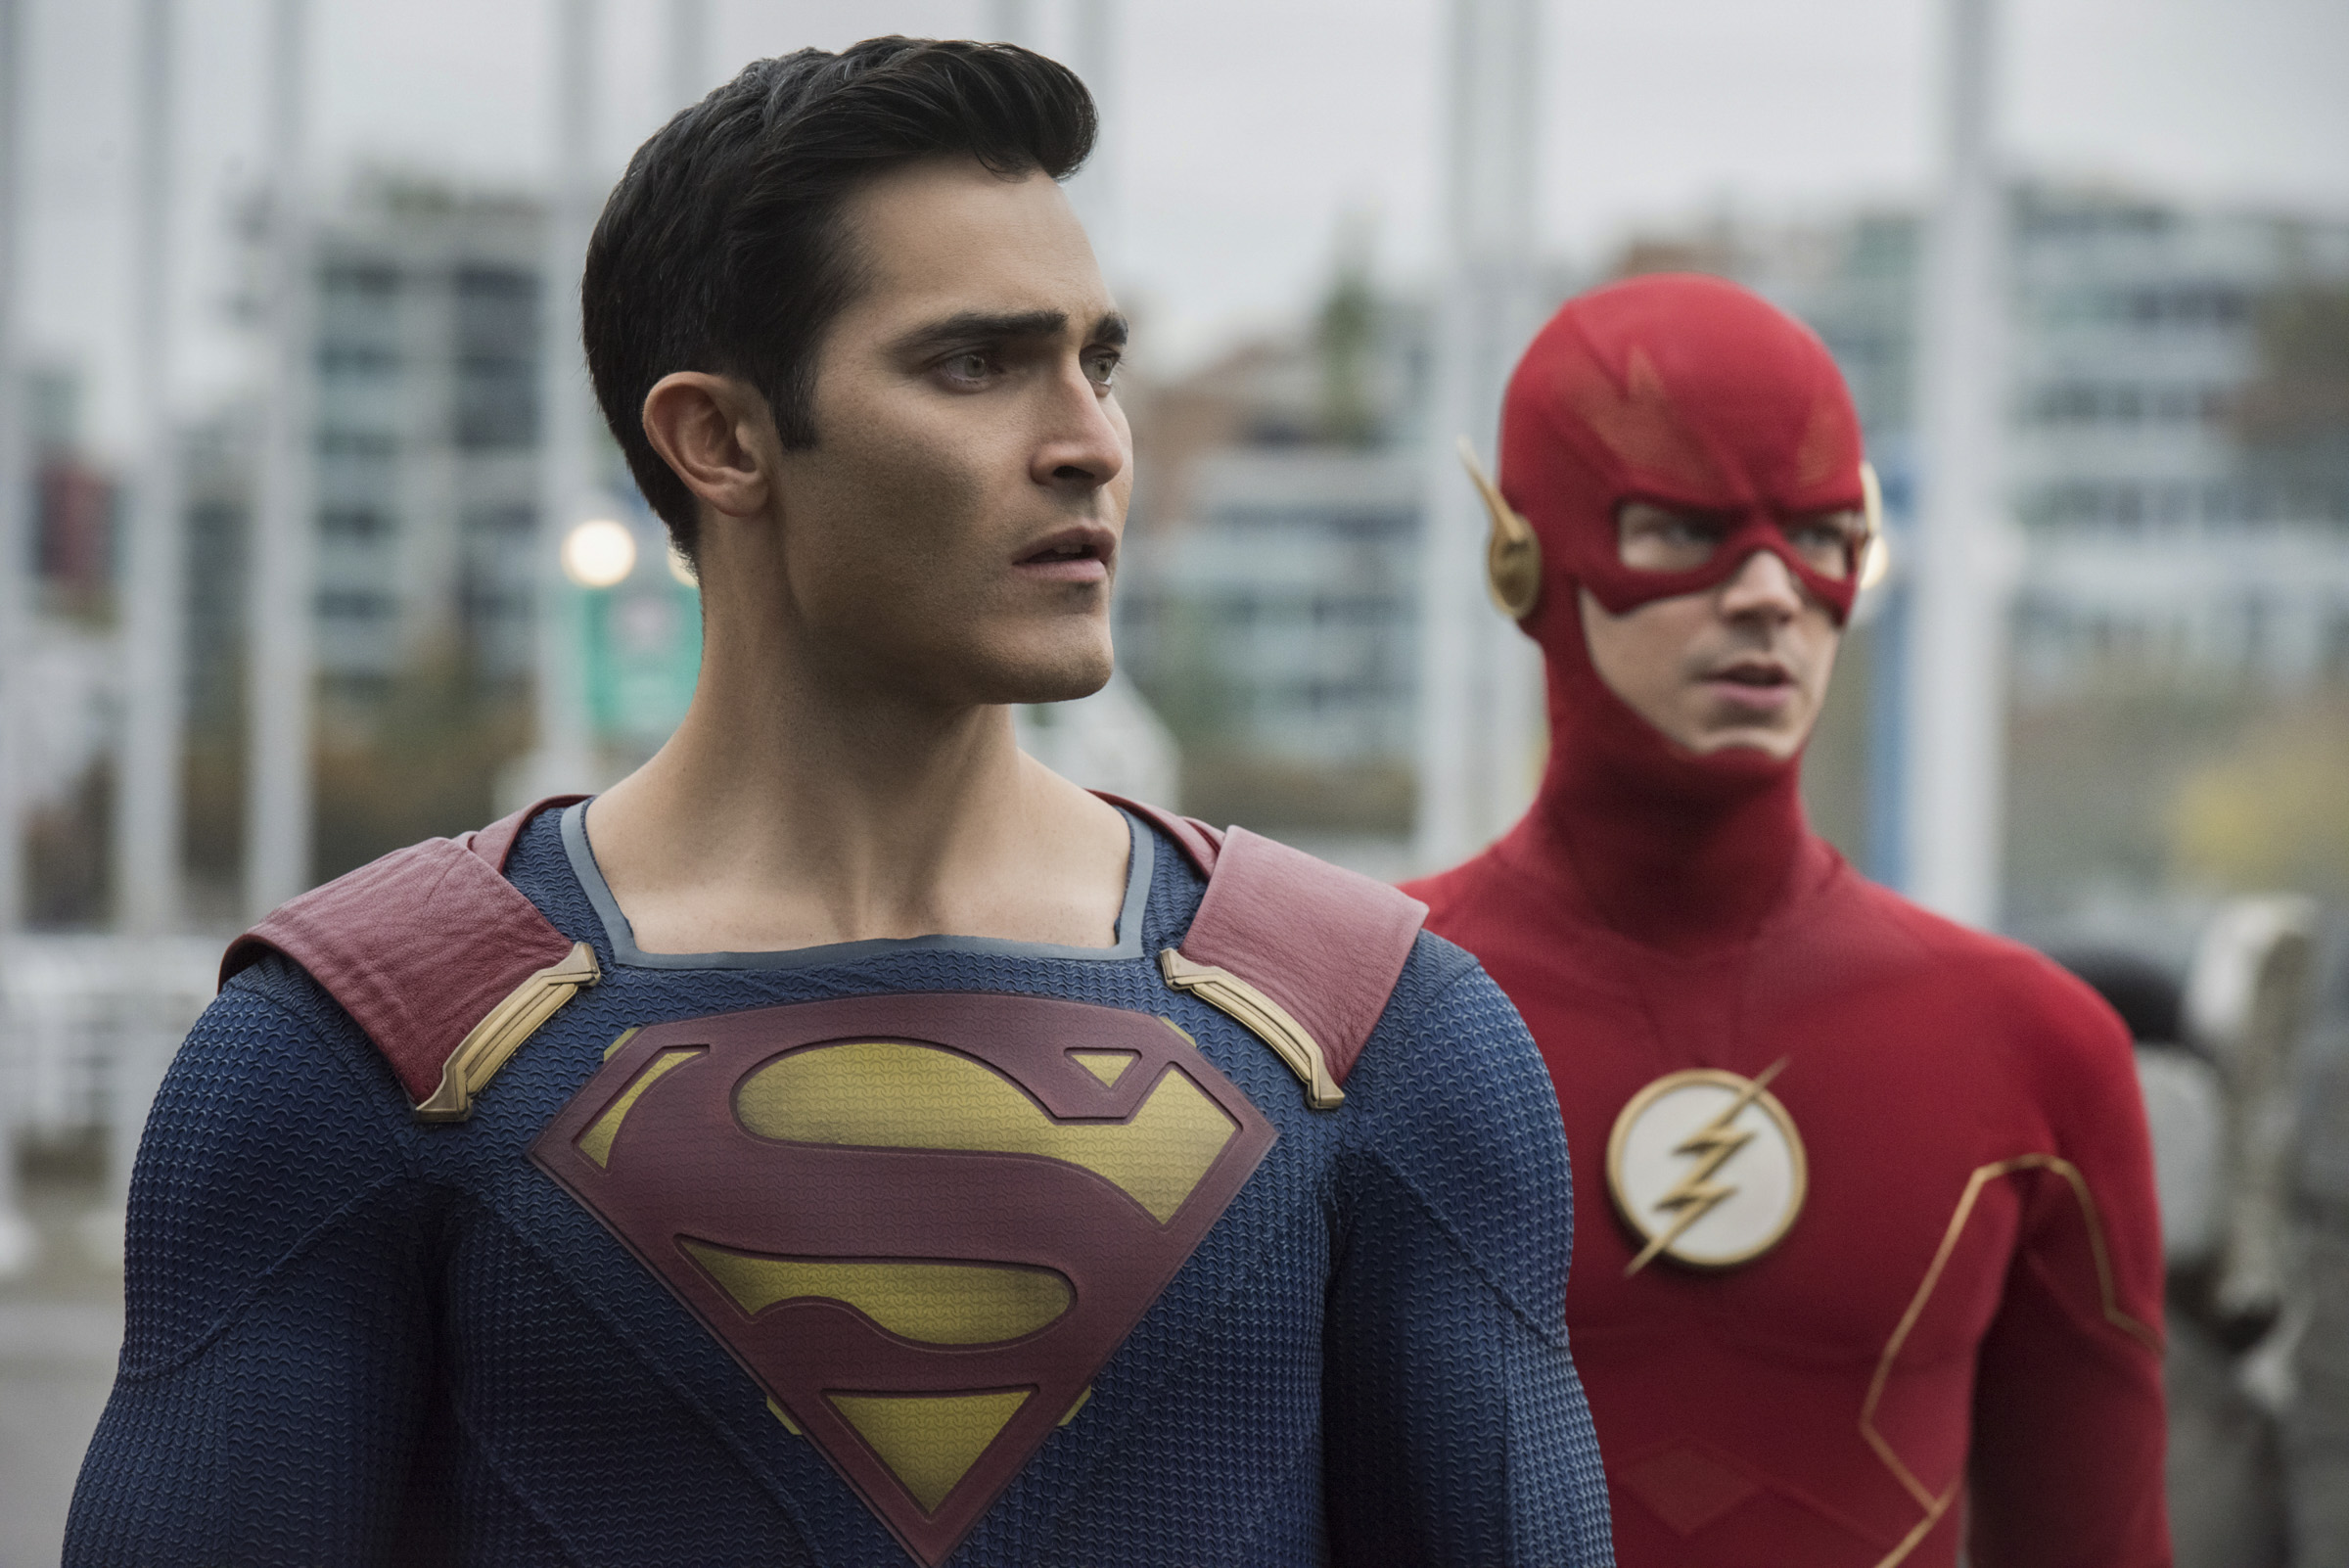 Superman and The Flash